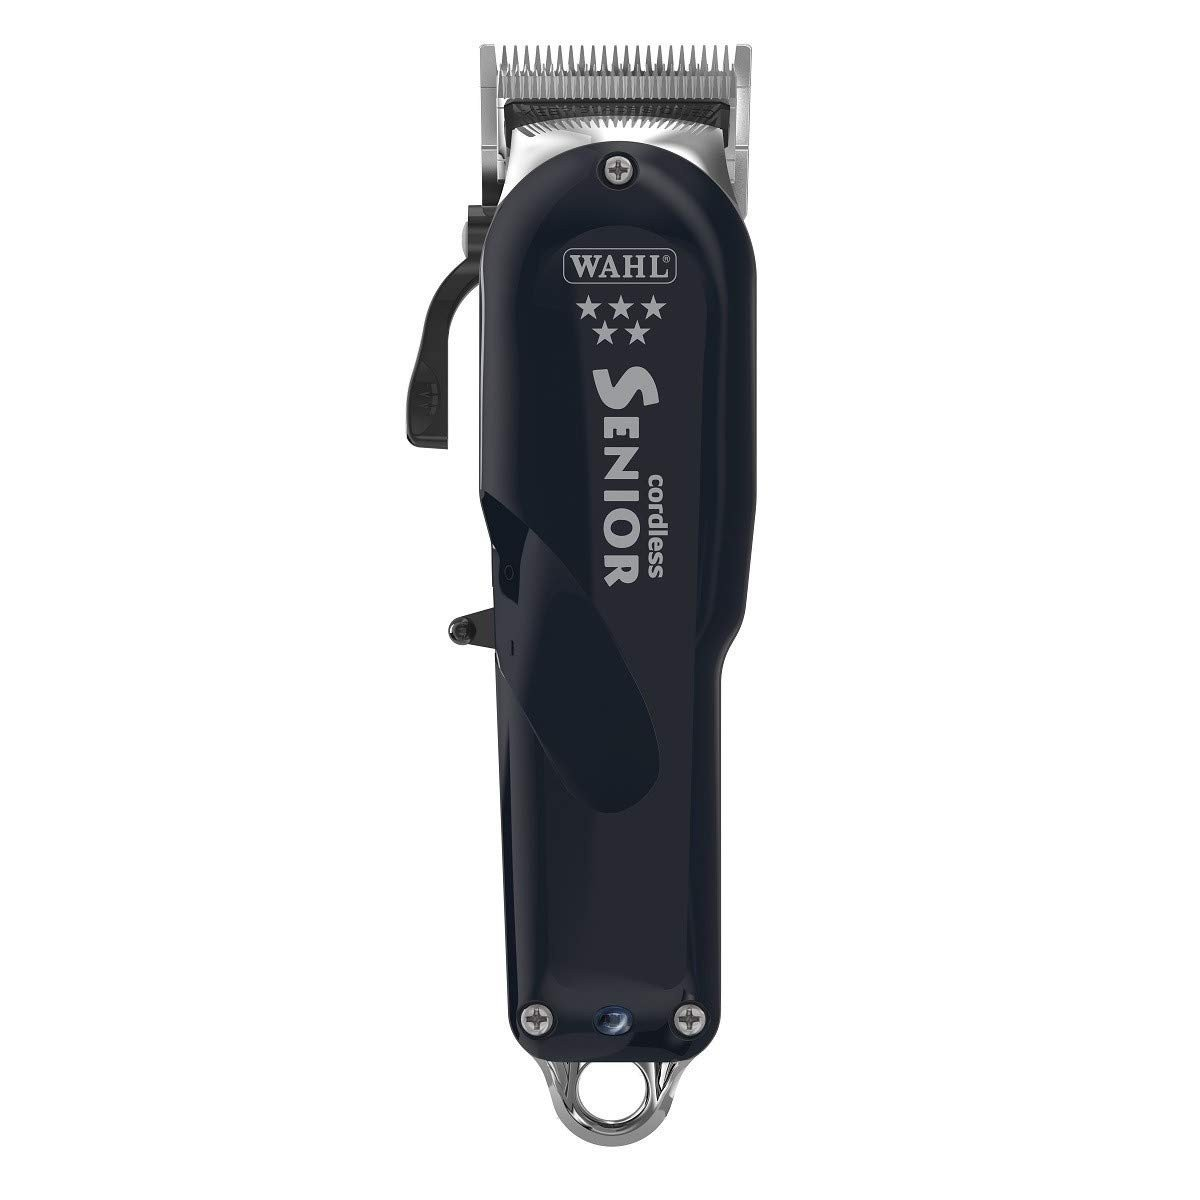 Wahl senior cordless recensione clipper